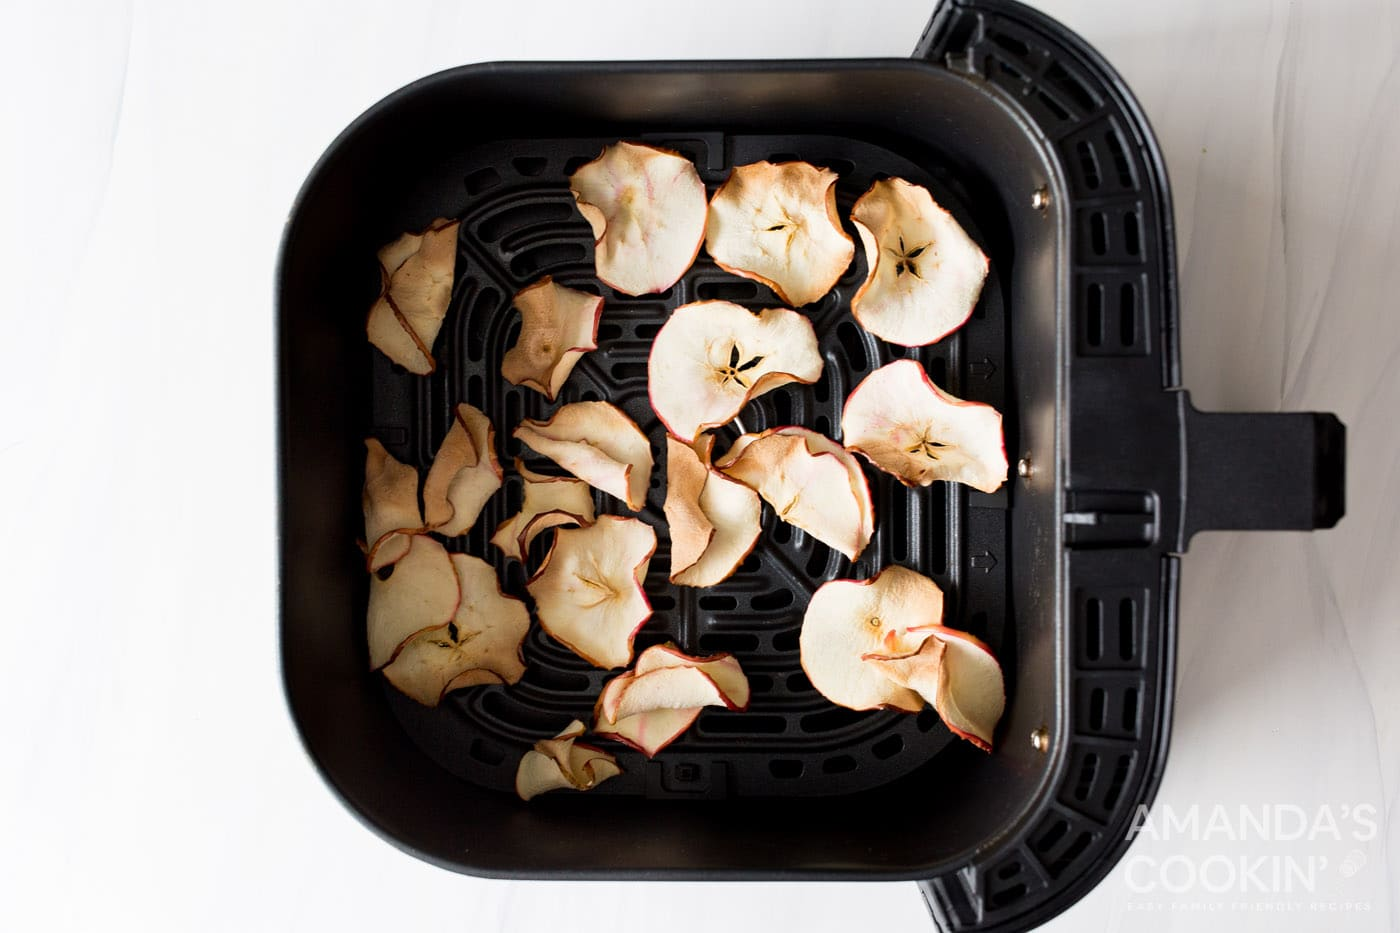 dehydrated apple chips in an air fryer